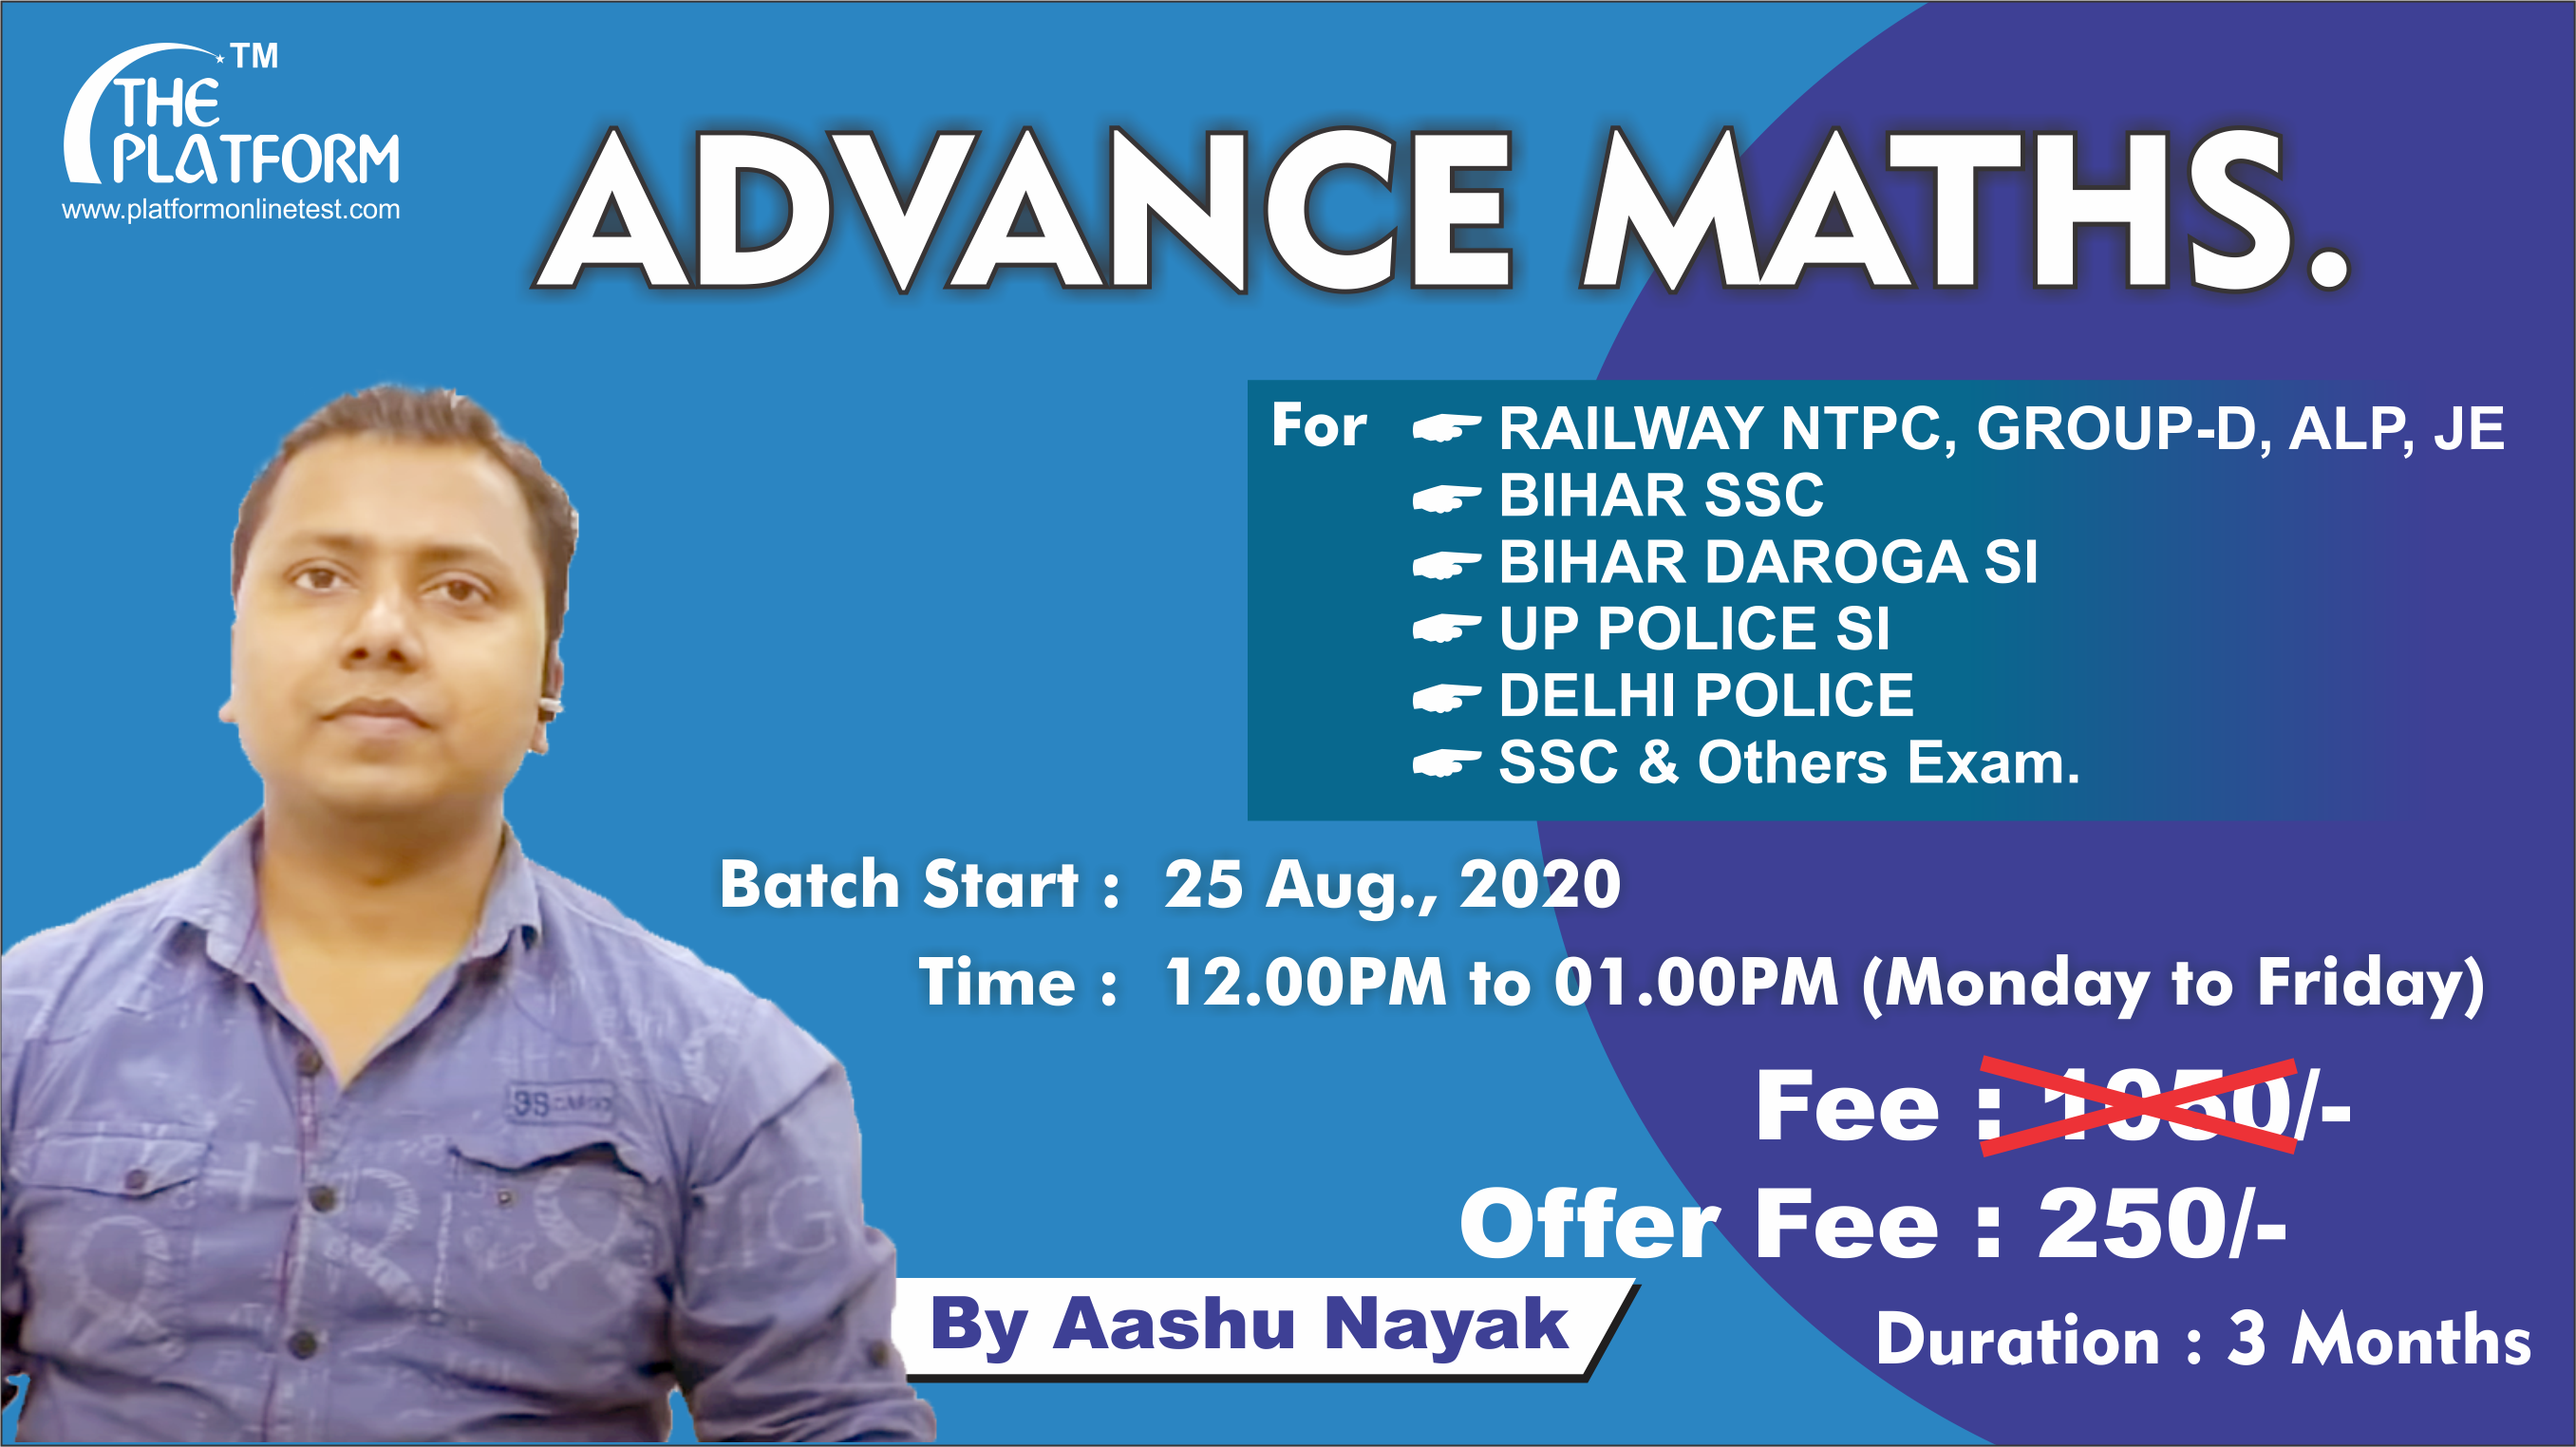 29-ADVANCE MATHS. By Aashu Nayak, Session-01